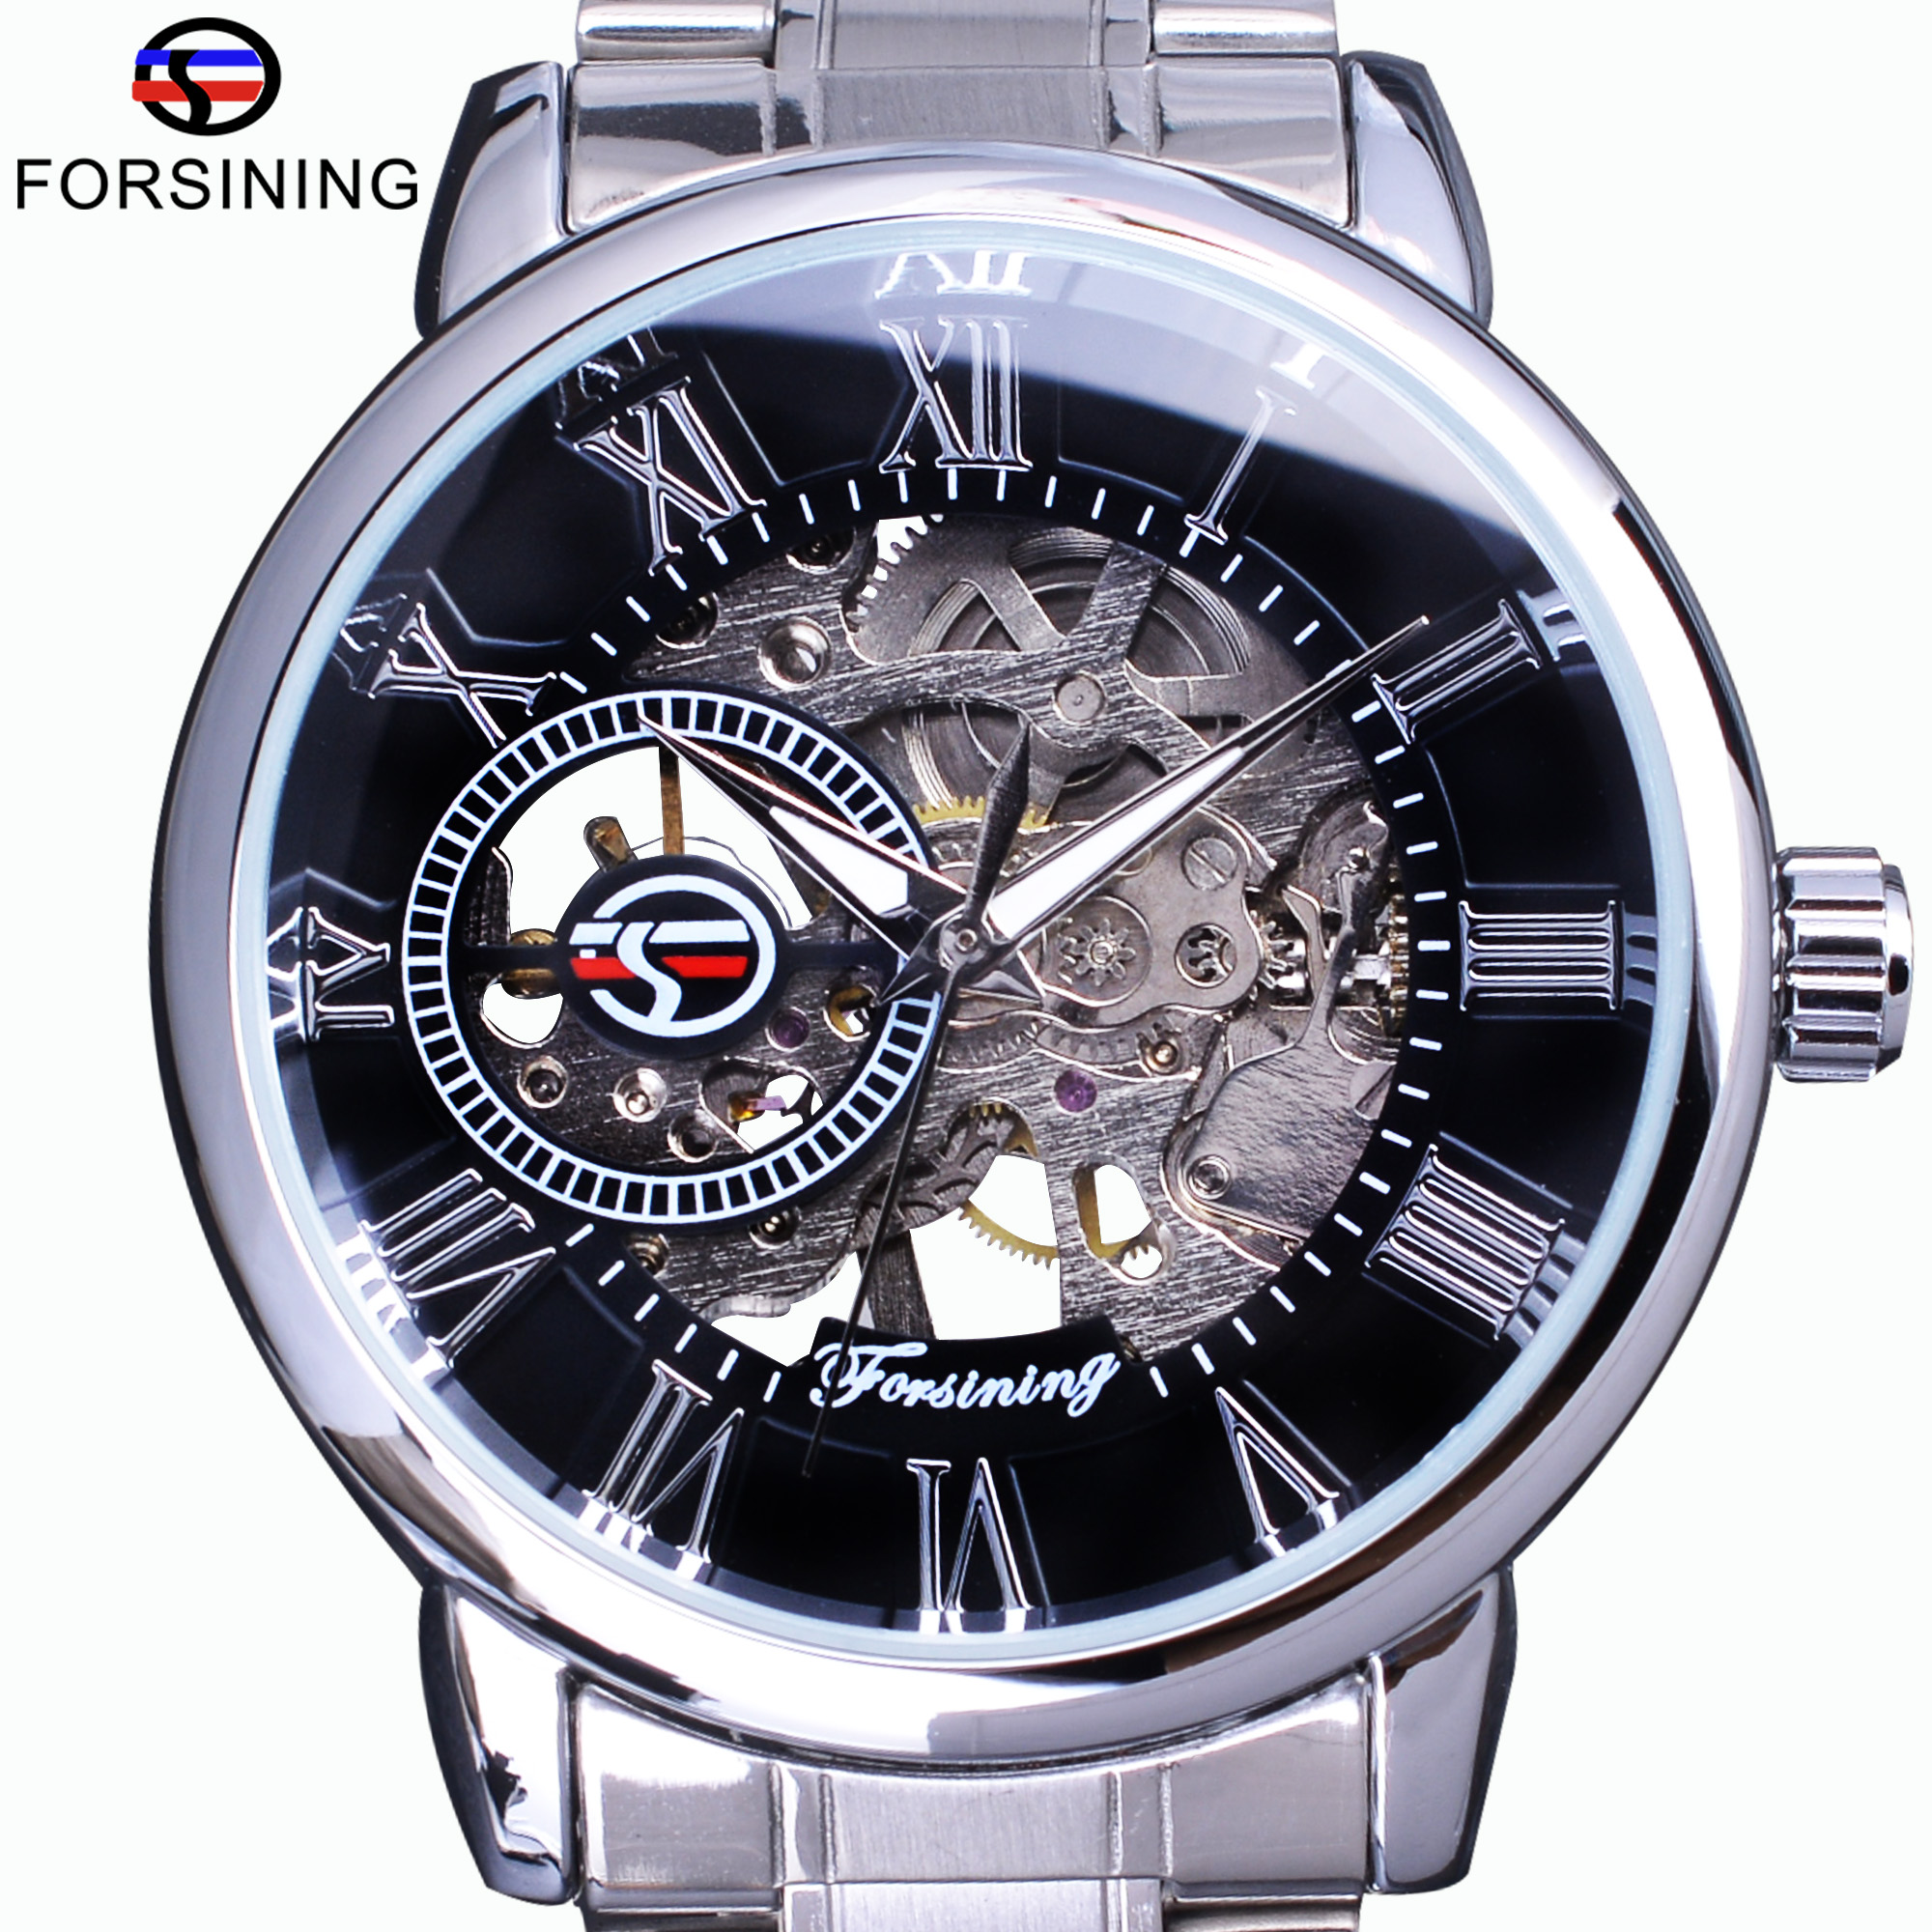 Forsining Classic Retro Series 3D Logo Transparent Dial Silver Steel Skeleton Clock Men Watch Top Brand Luxury Mechanical Watch forsining classic series black genuine leather strap 3 dial 6 hands men watch top brand luxury automatic mechanical watch clock